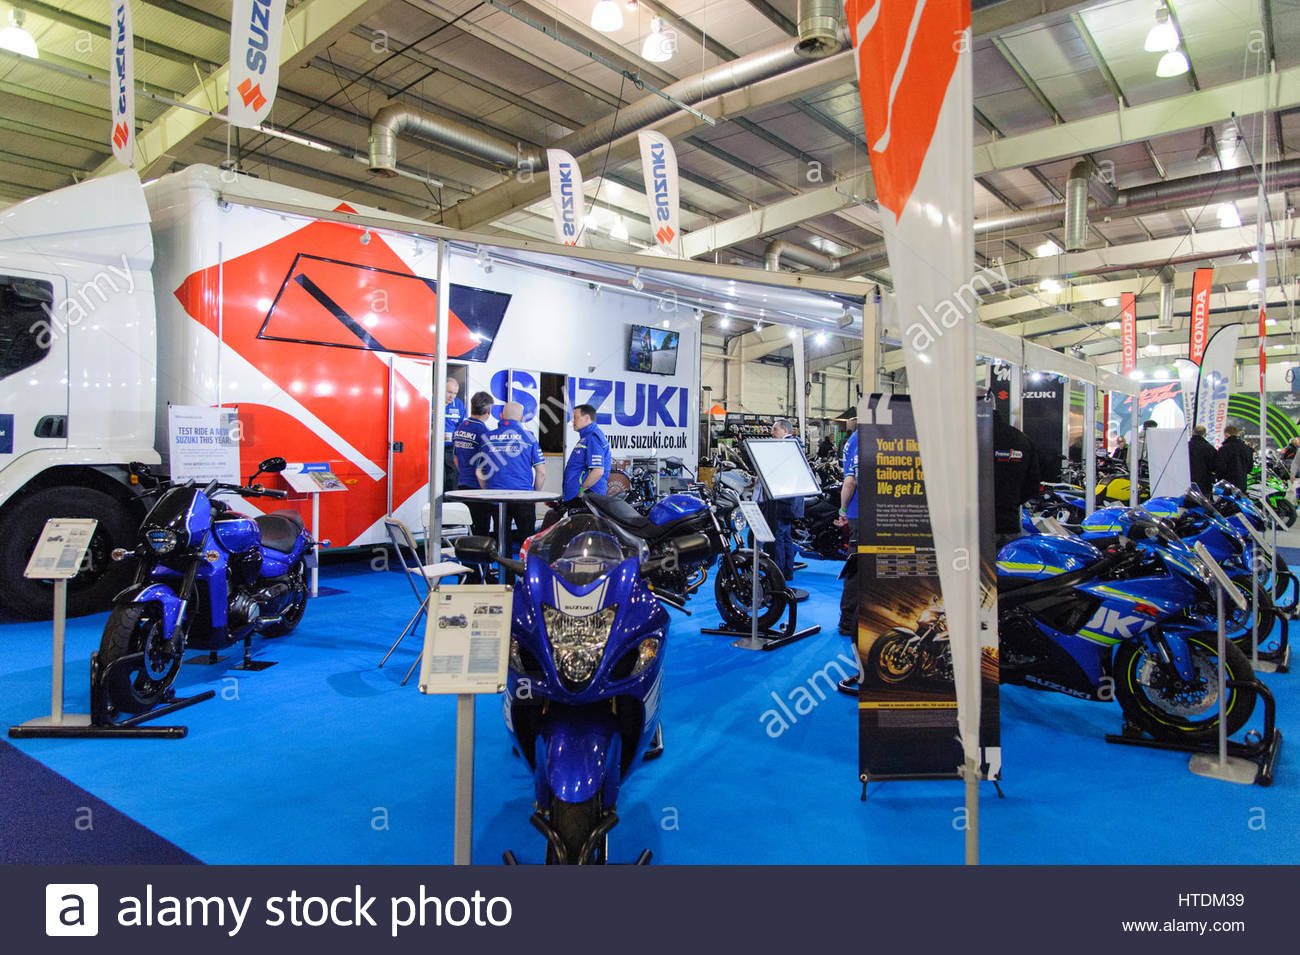 Edinburgh, UK. 11 March, 2017. Suzuki Motorcycles stand at the Carole Nash MCN Scottish Motorcycle Show. Roger Gaisford/Alamy - Stock Image